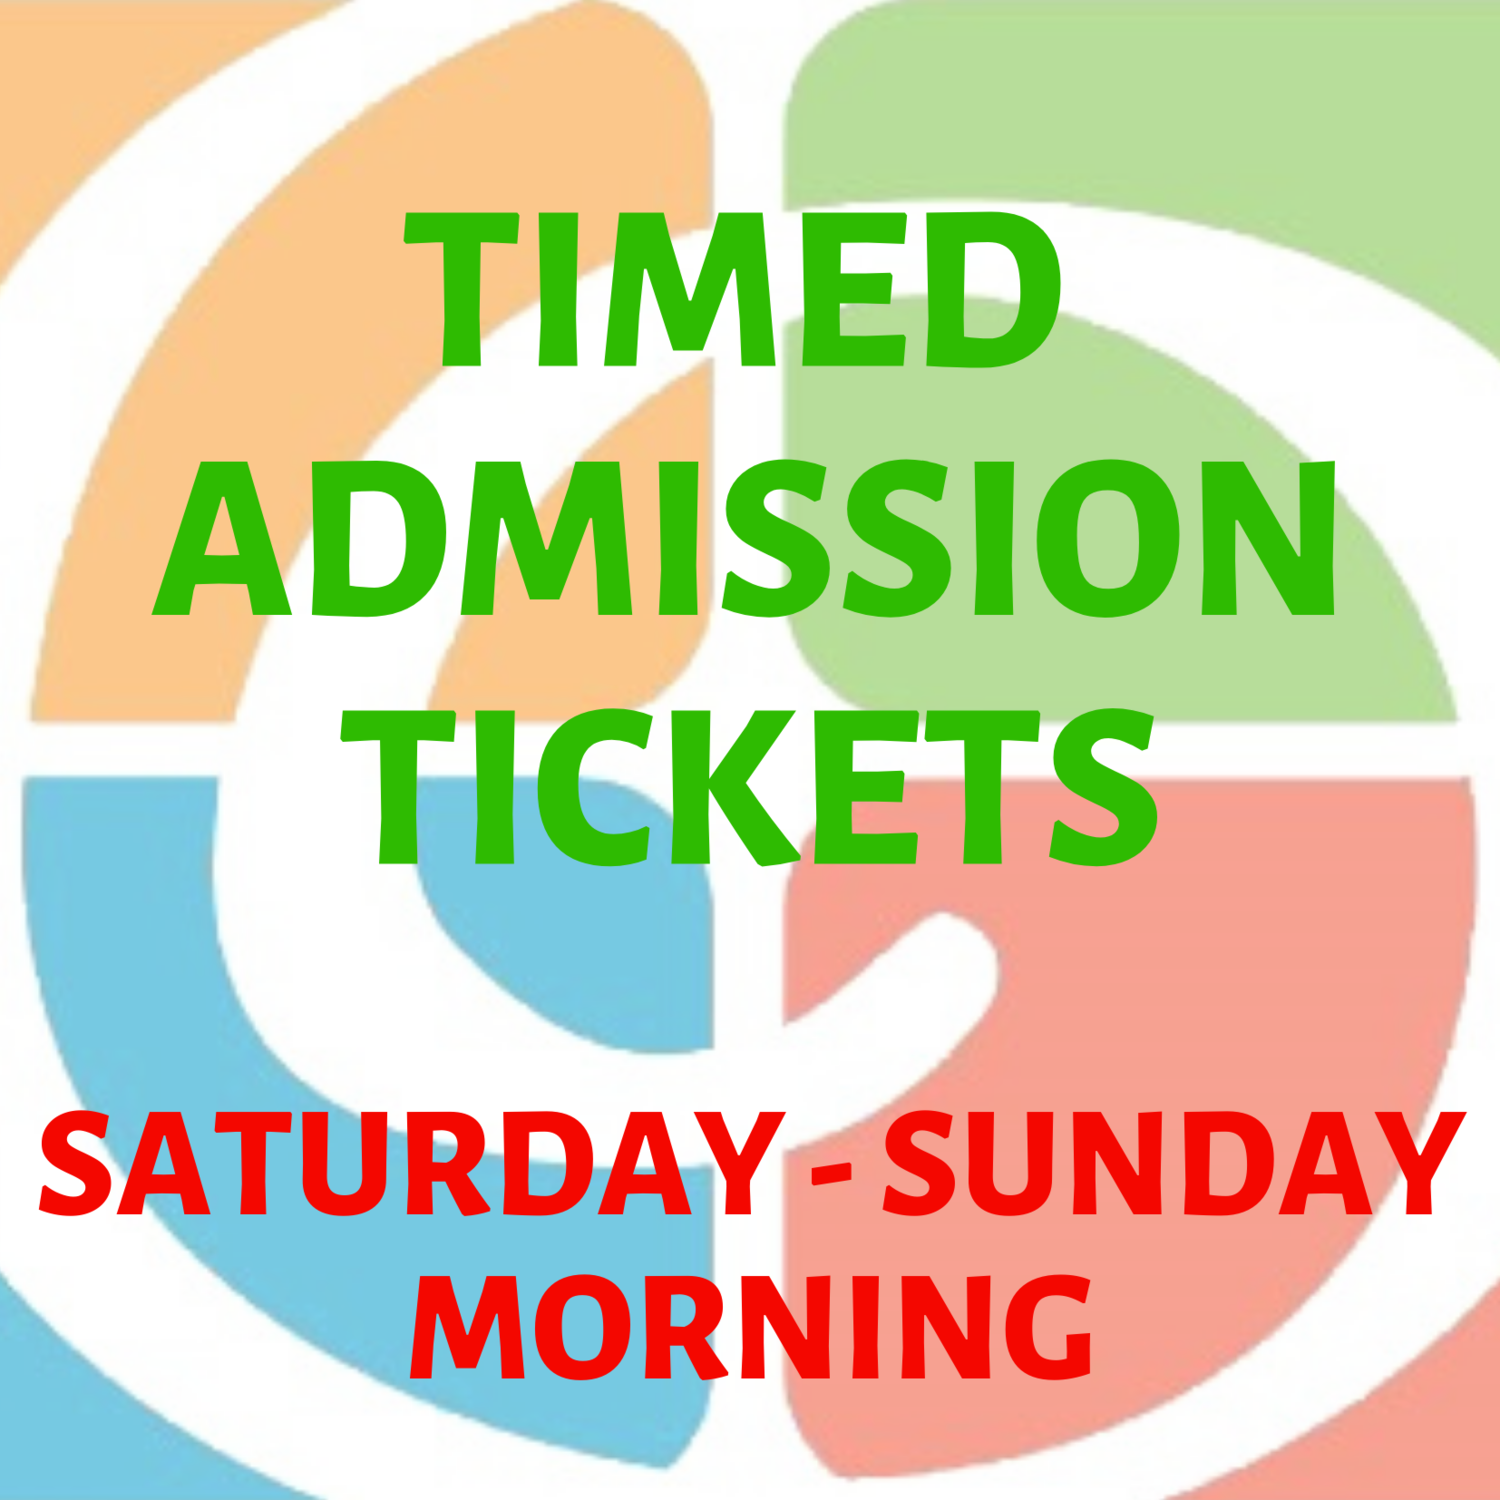 Timed Admission Tickets Weekend Morning